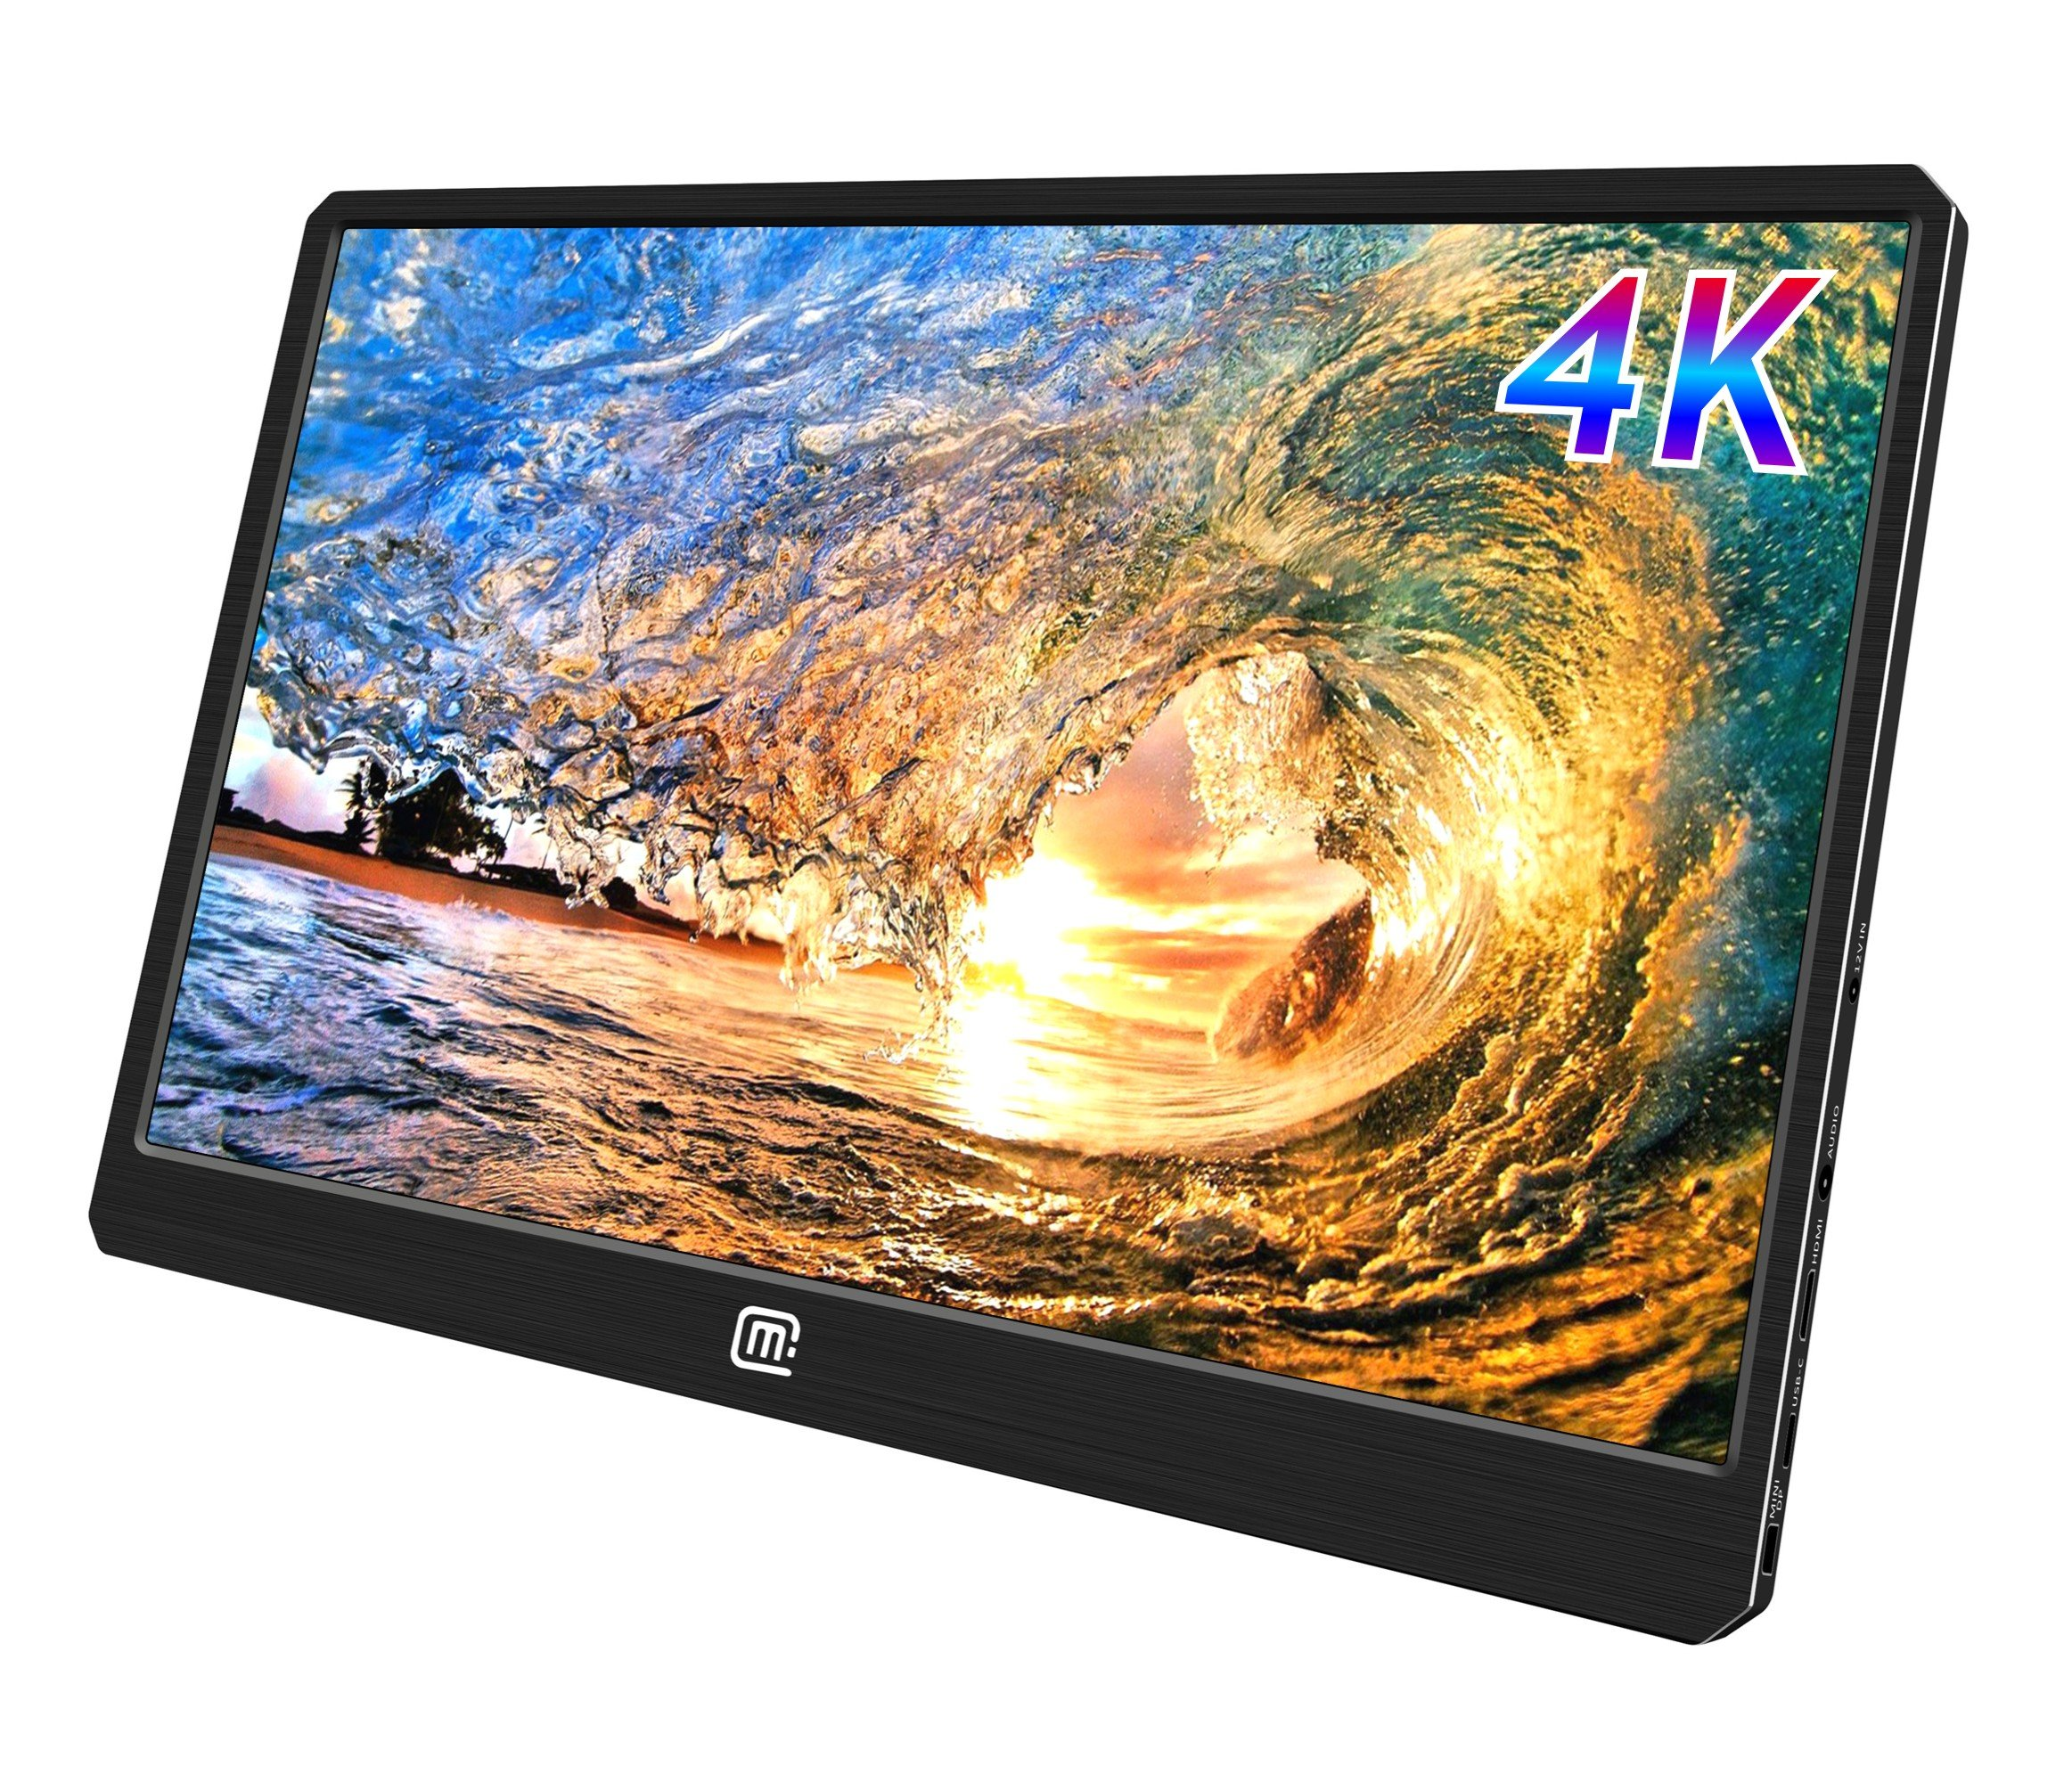 MageDok 4K Portable Monitor with USB Type-C /HDMI/DisplayPortInput,Ultra UHD 3840x2160 IPS Dispaly,100% Adobe,Ultralight Weight 2bls,Slim 3.7 Inch,built-in Speakers,Mountable